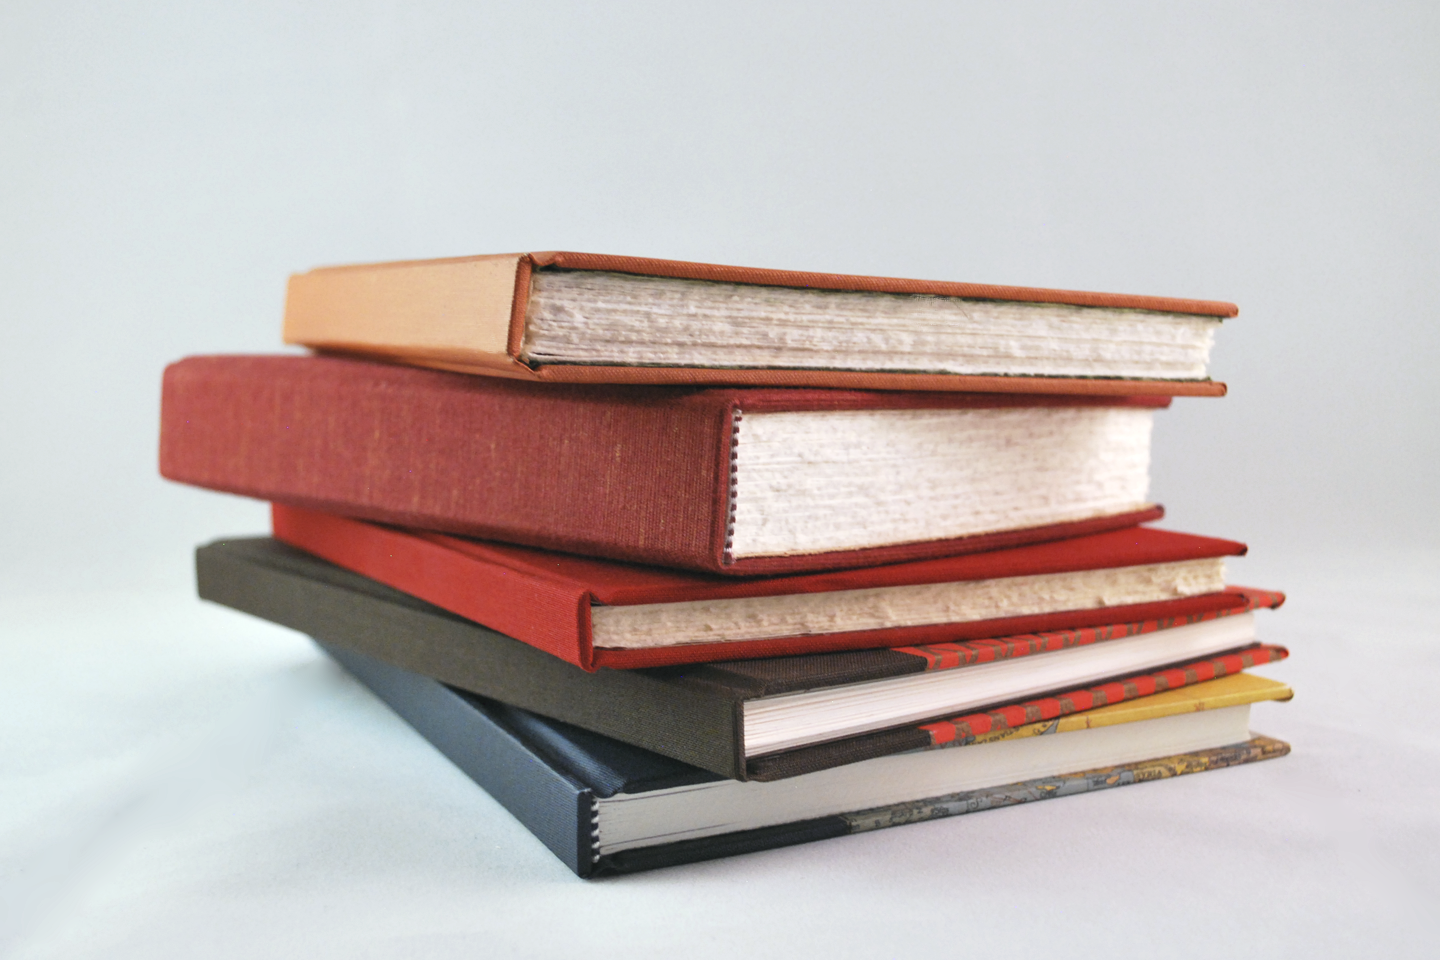 Square-back books - great for journals, sketchbooks, and notebooks.